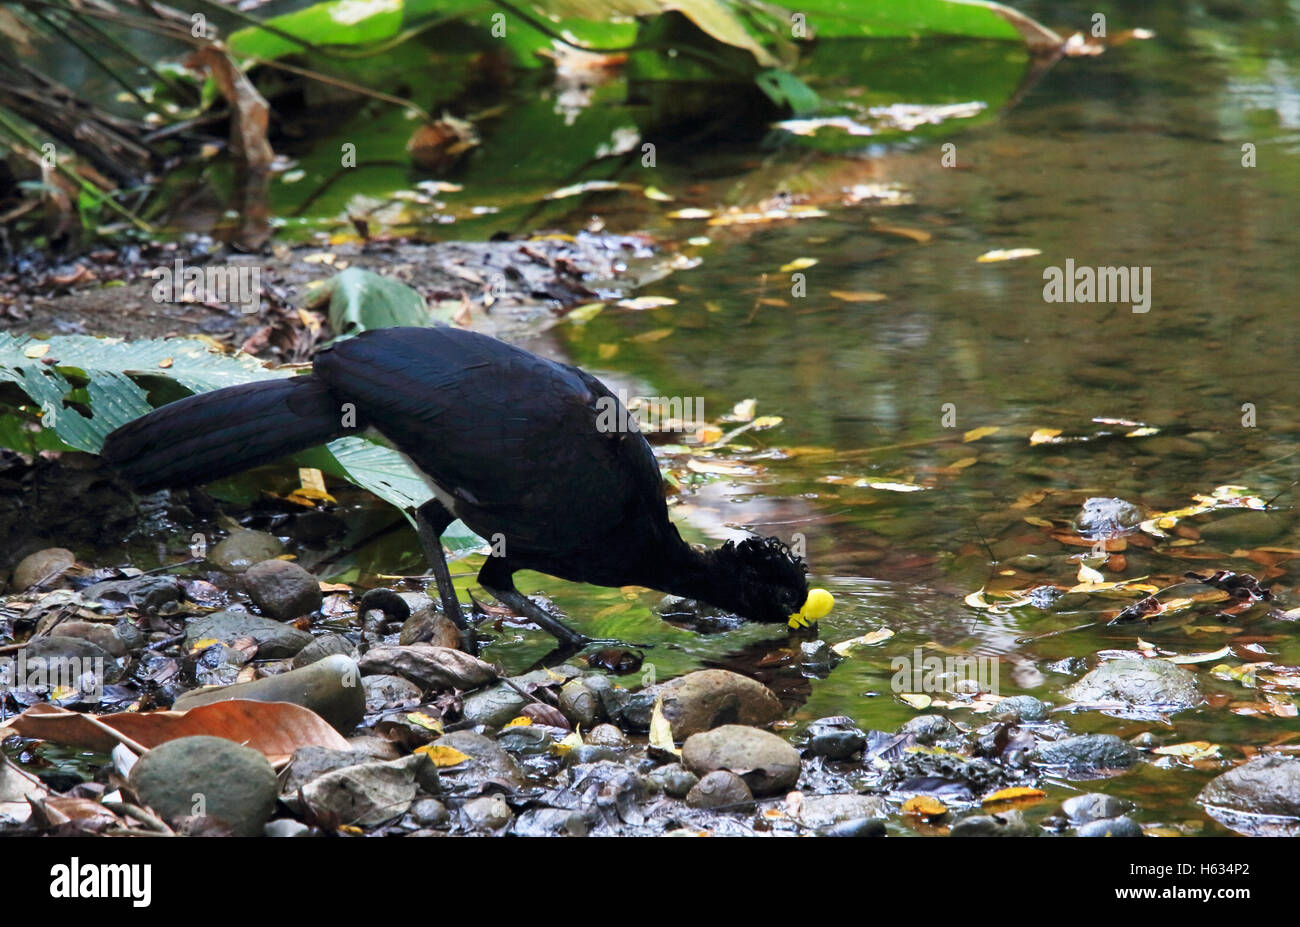 Male Great Curassow (Crax rubra) drinking from rainforest stream. Sirena, Corcovado National Park; Osa Peninsula; Stock Photo